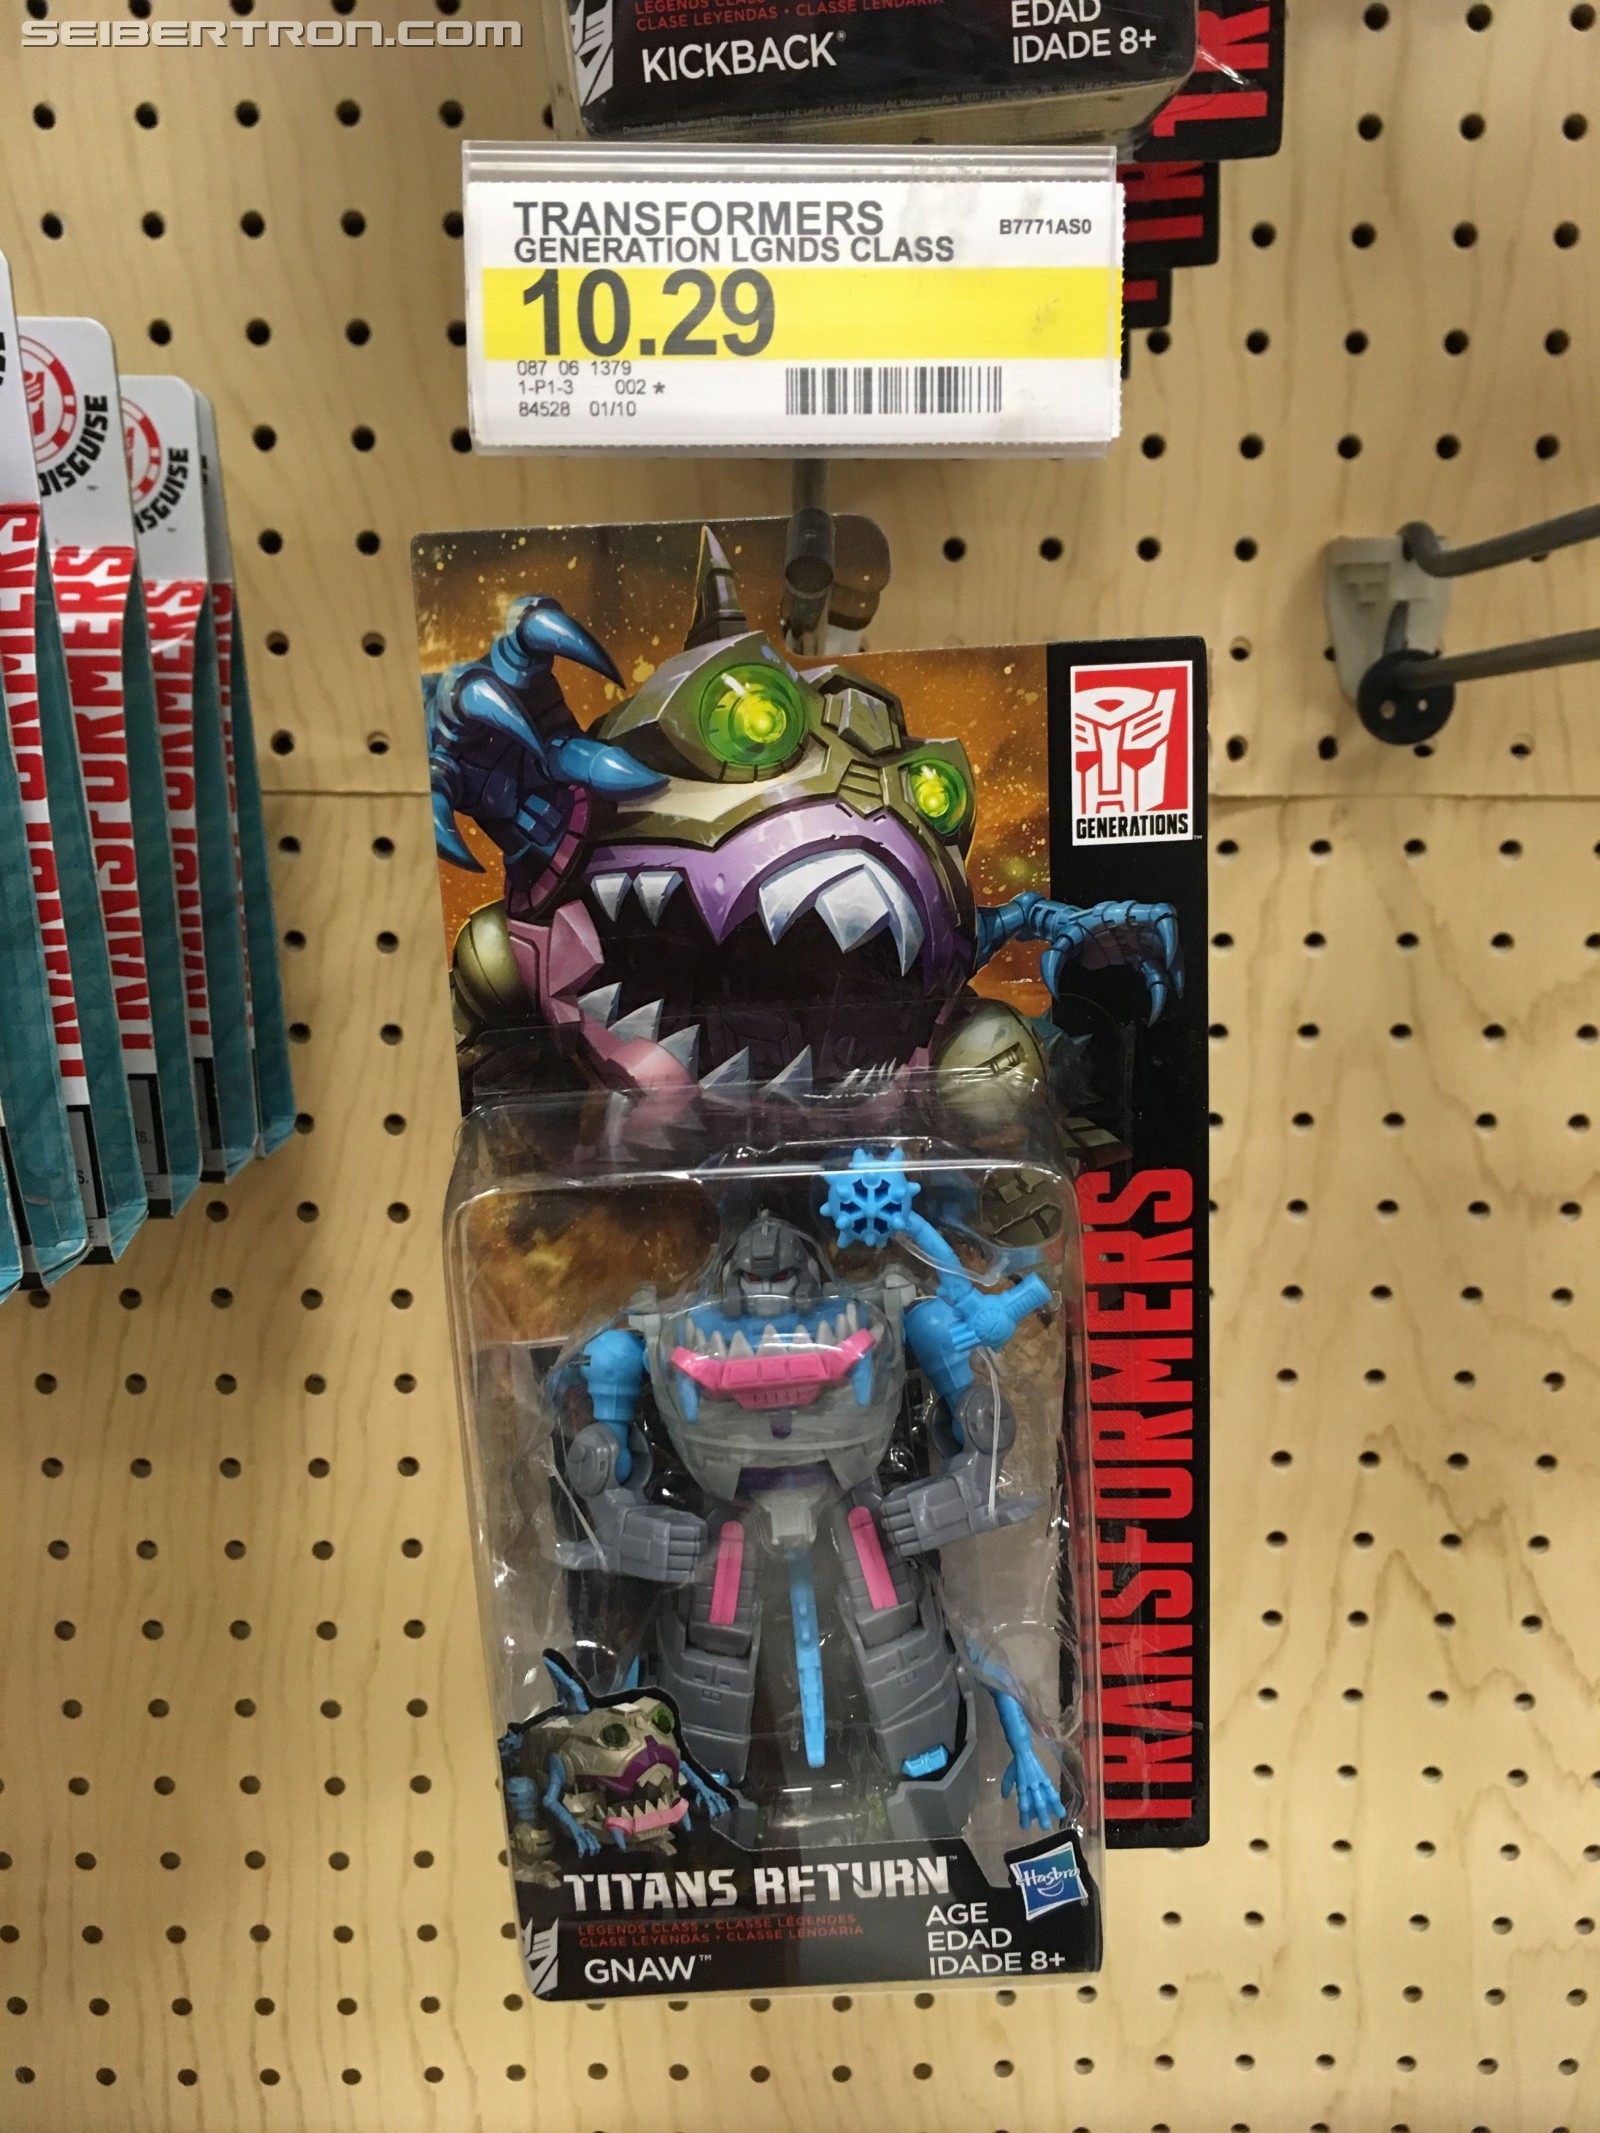 Transformers News: New Sightings of Titans Return Wave 3 Legends Class Gnaw, Bumblebee and Kickback